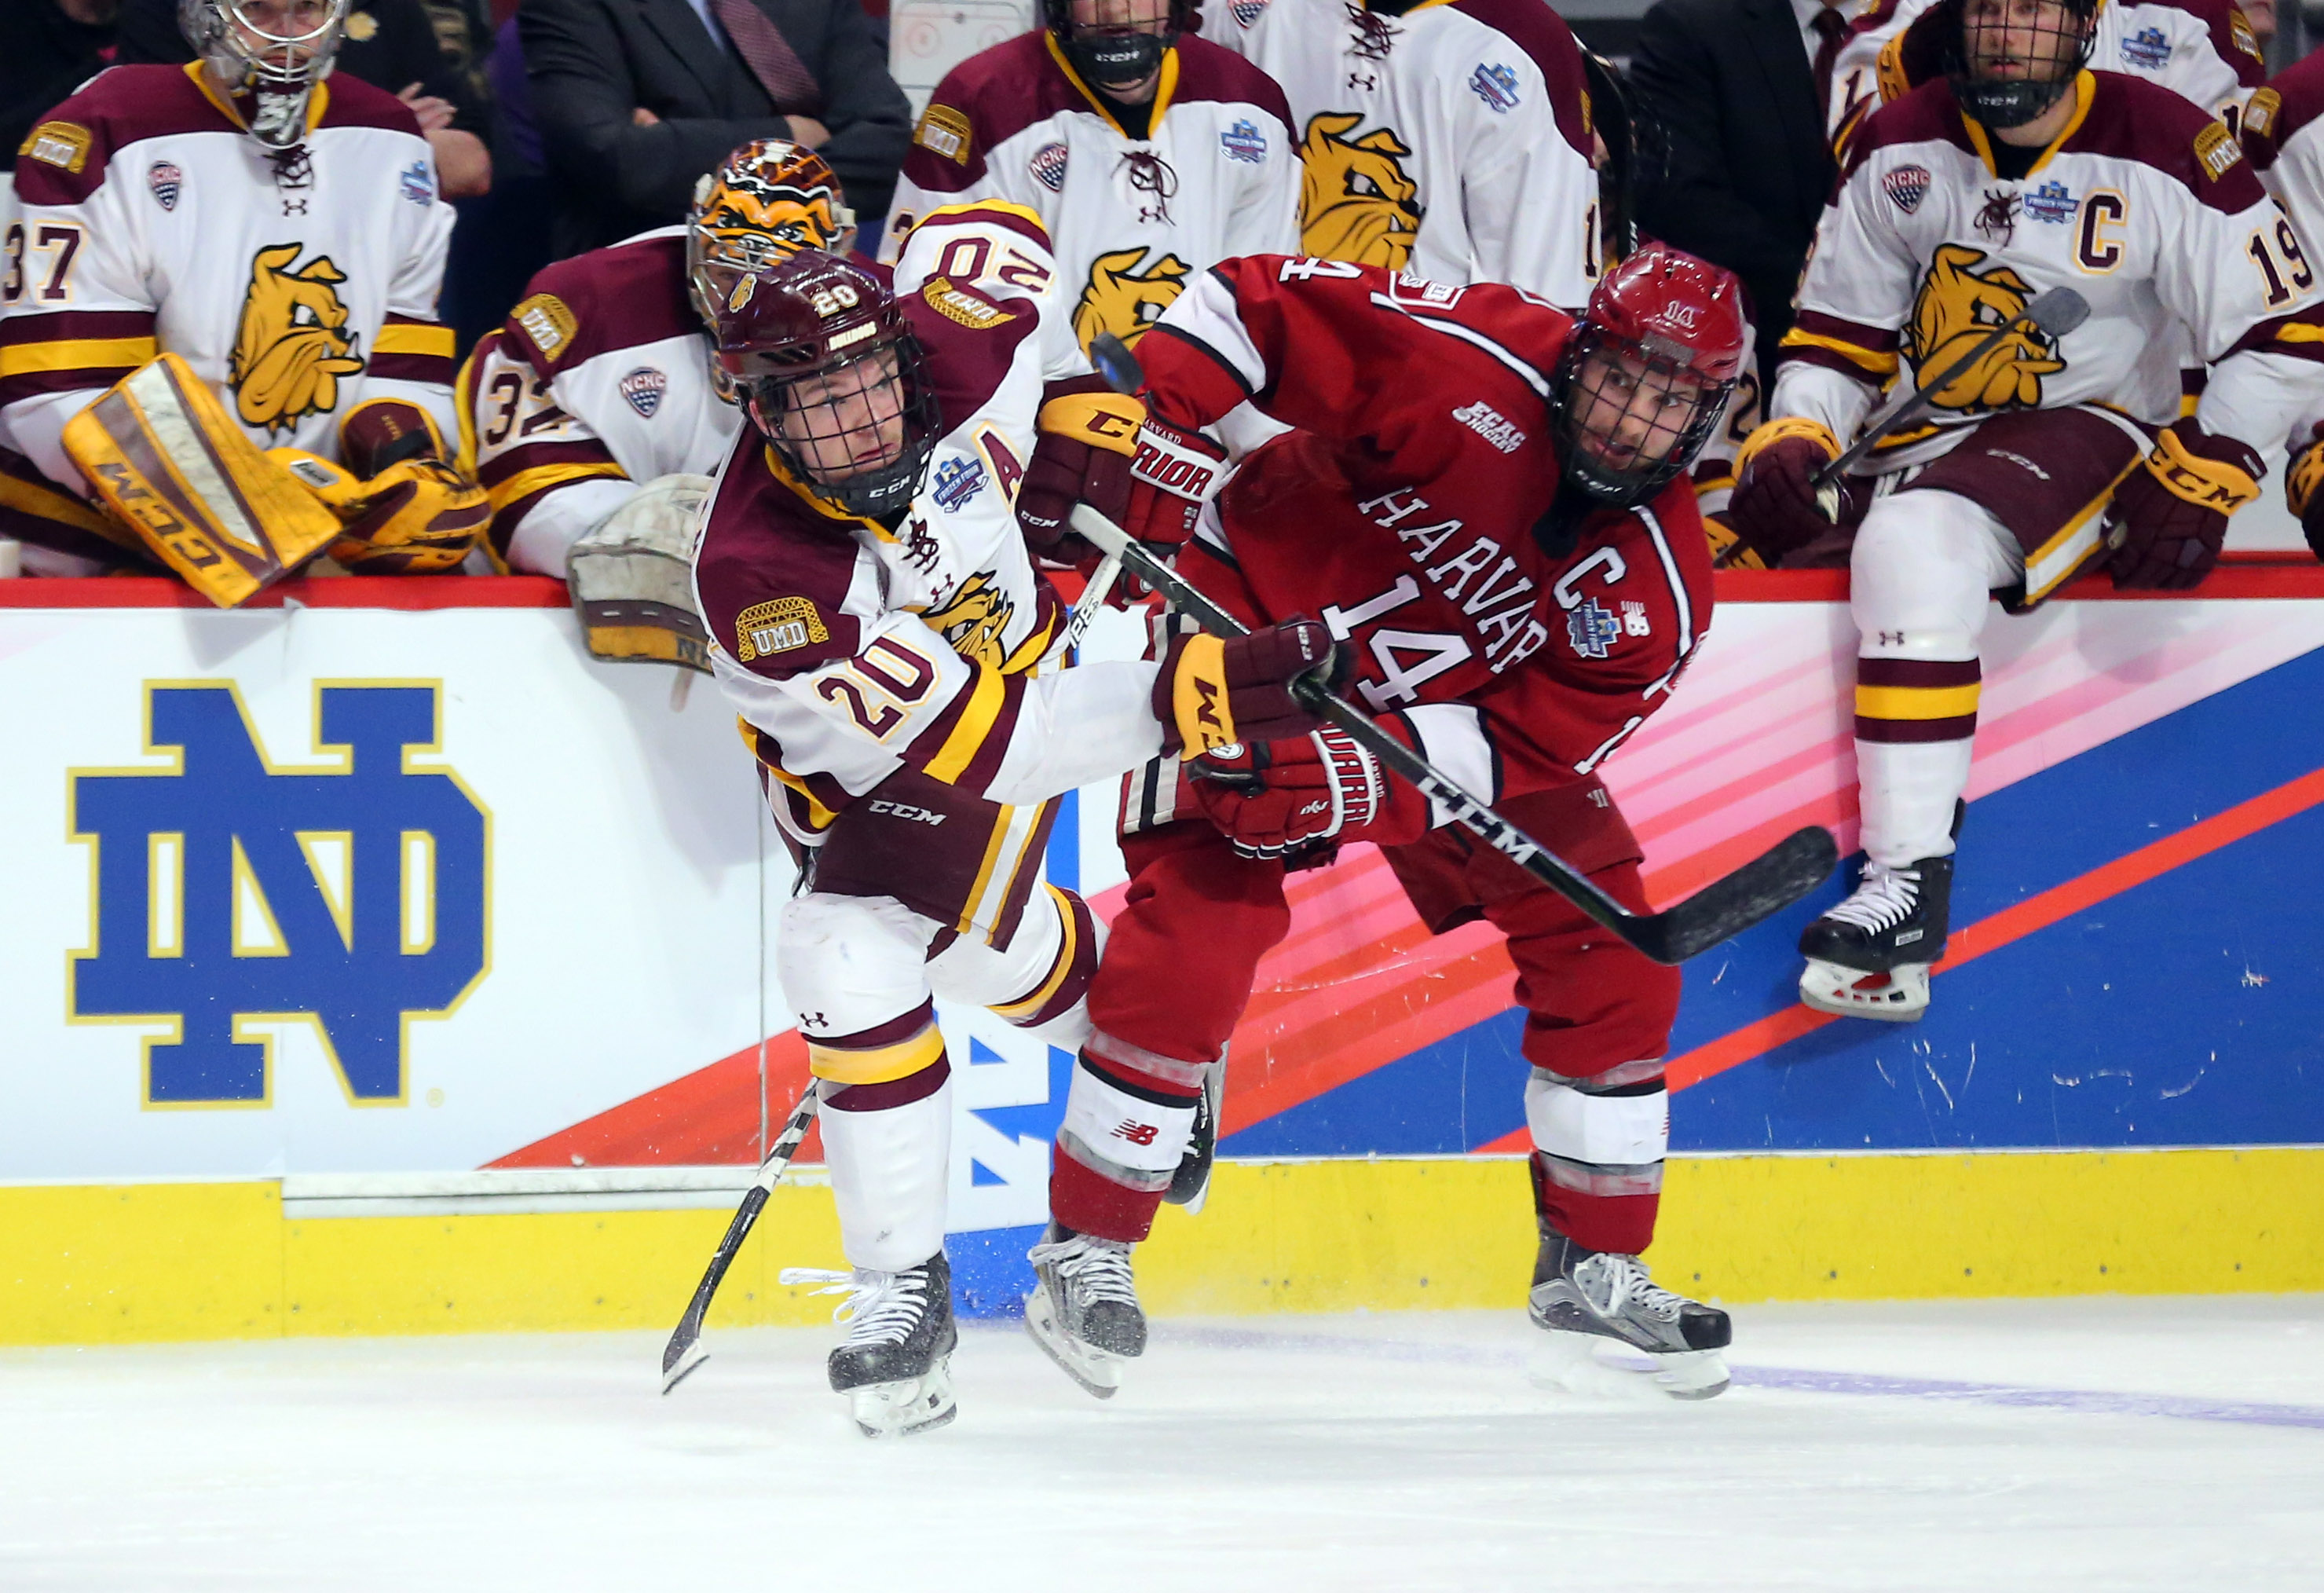 chicago blackhawks playing style proving successful in college ranks apr 6 2017 chicago il usa minnesota duluth bulldogs wing karson kuhlman 20 and harvard crimson forward alexander kerfoot 14 battle for possession